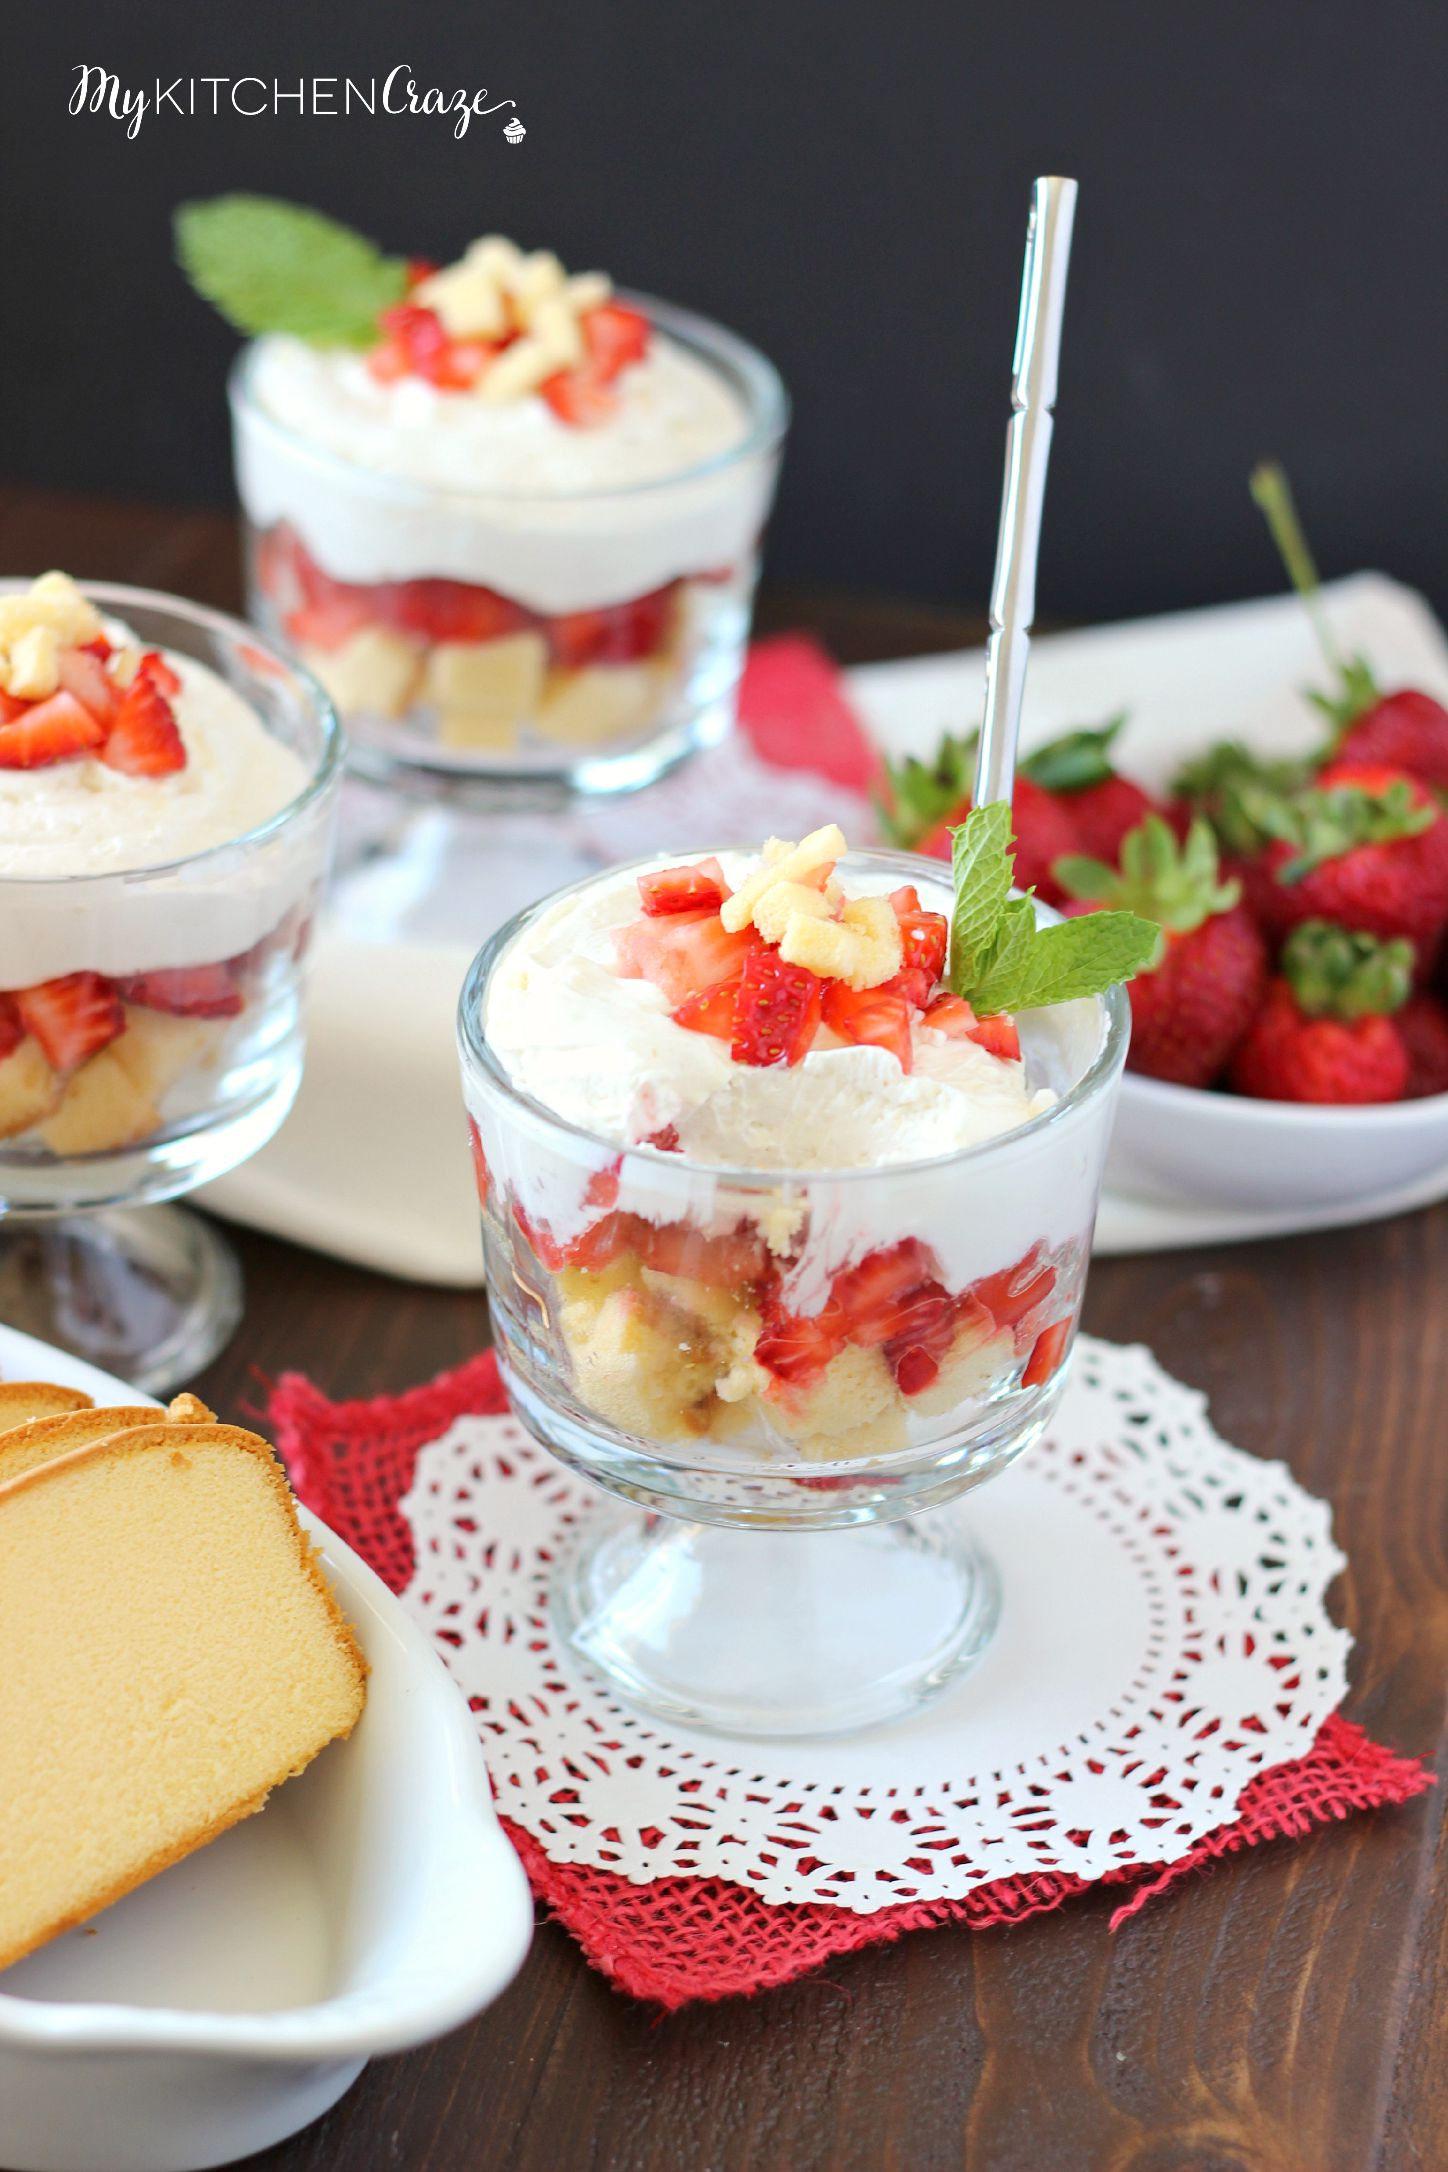 No Bake Strawberry Cheesecake Trifle ~ mykitchencraze.com